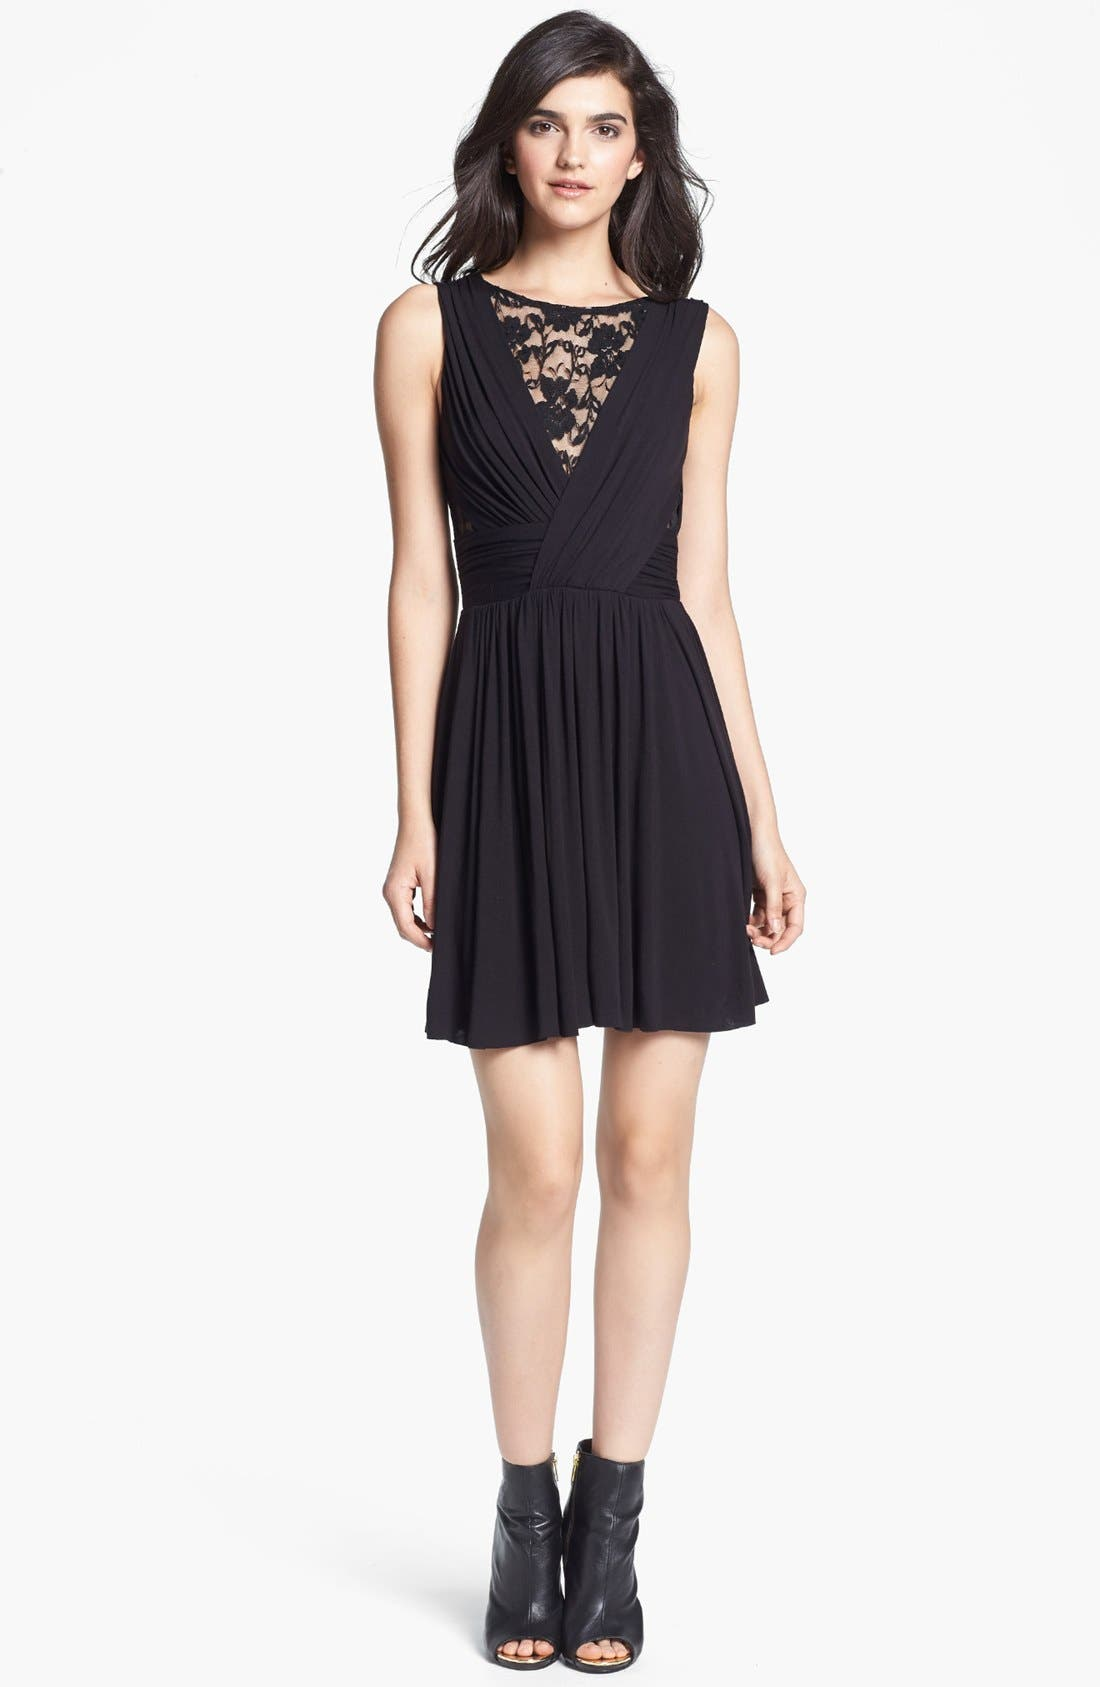 Alternate Image 1 Selected - B44 Dressed by Bailey 44 Lace Inset Jersey Fit & Flare Dress